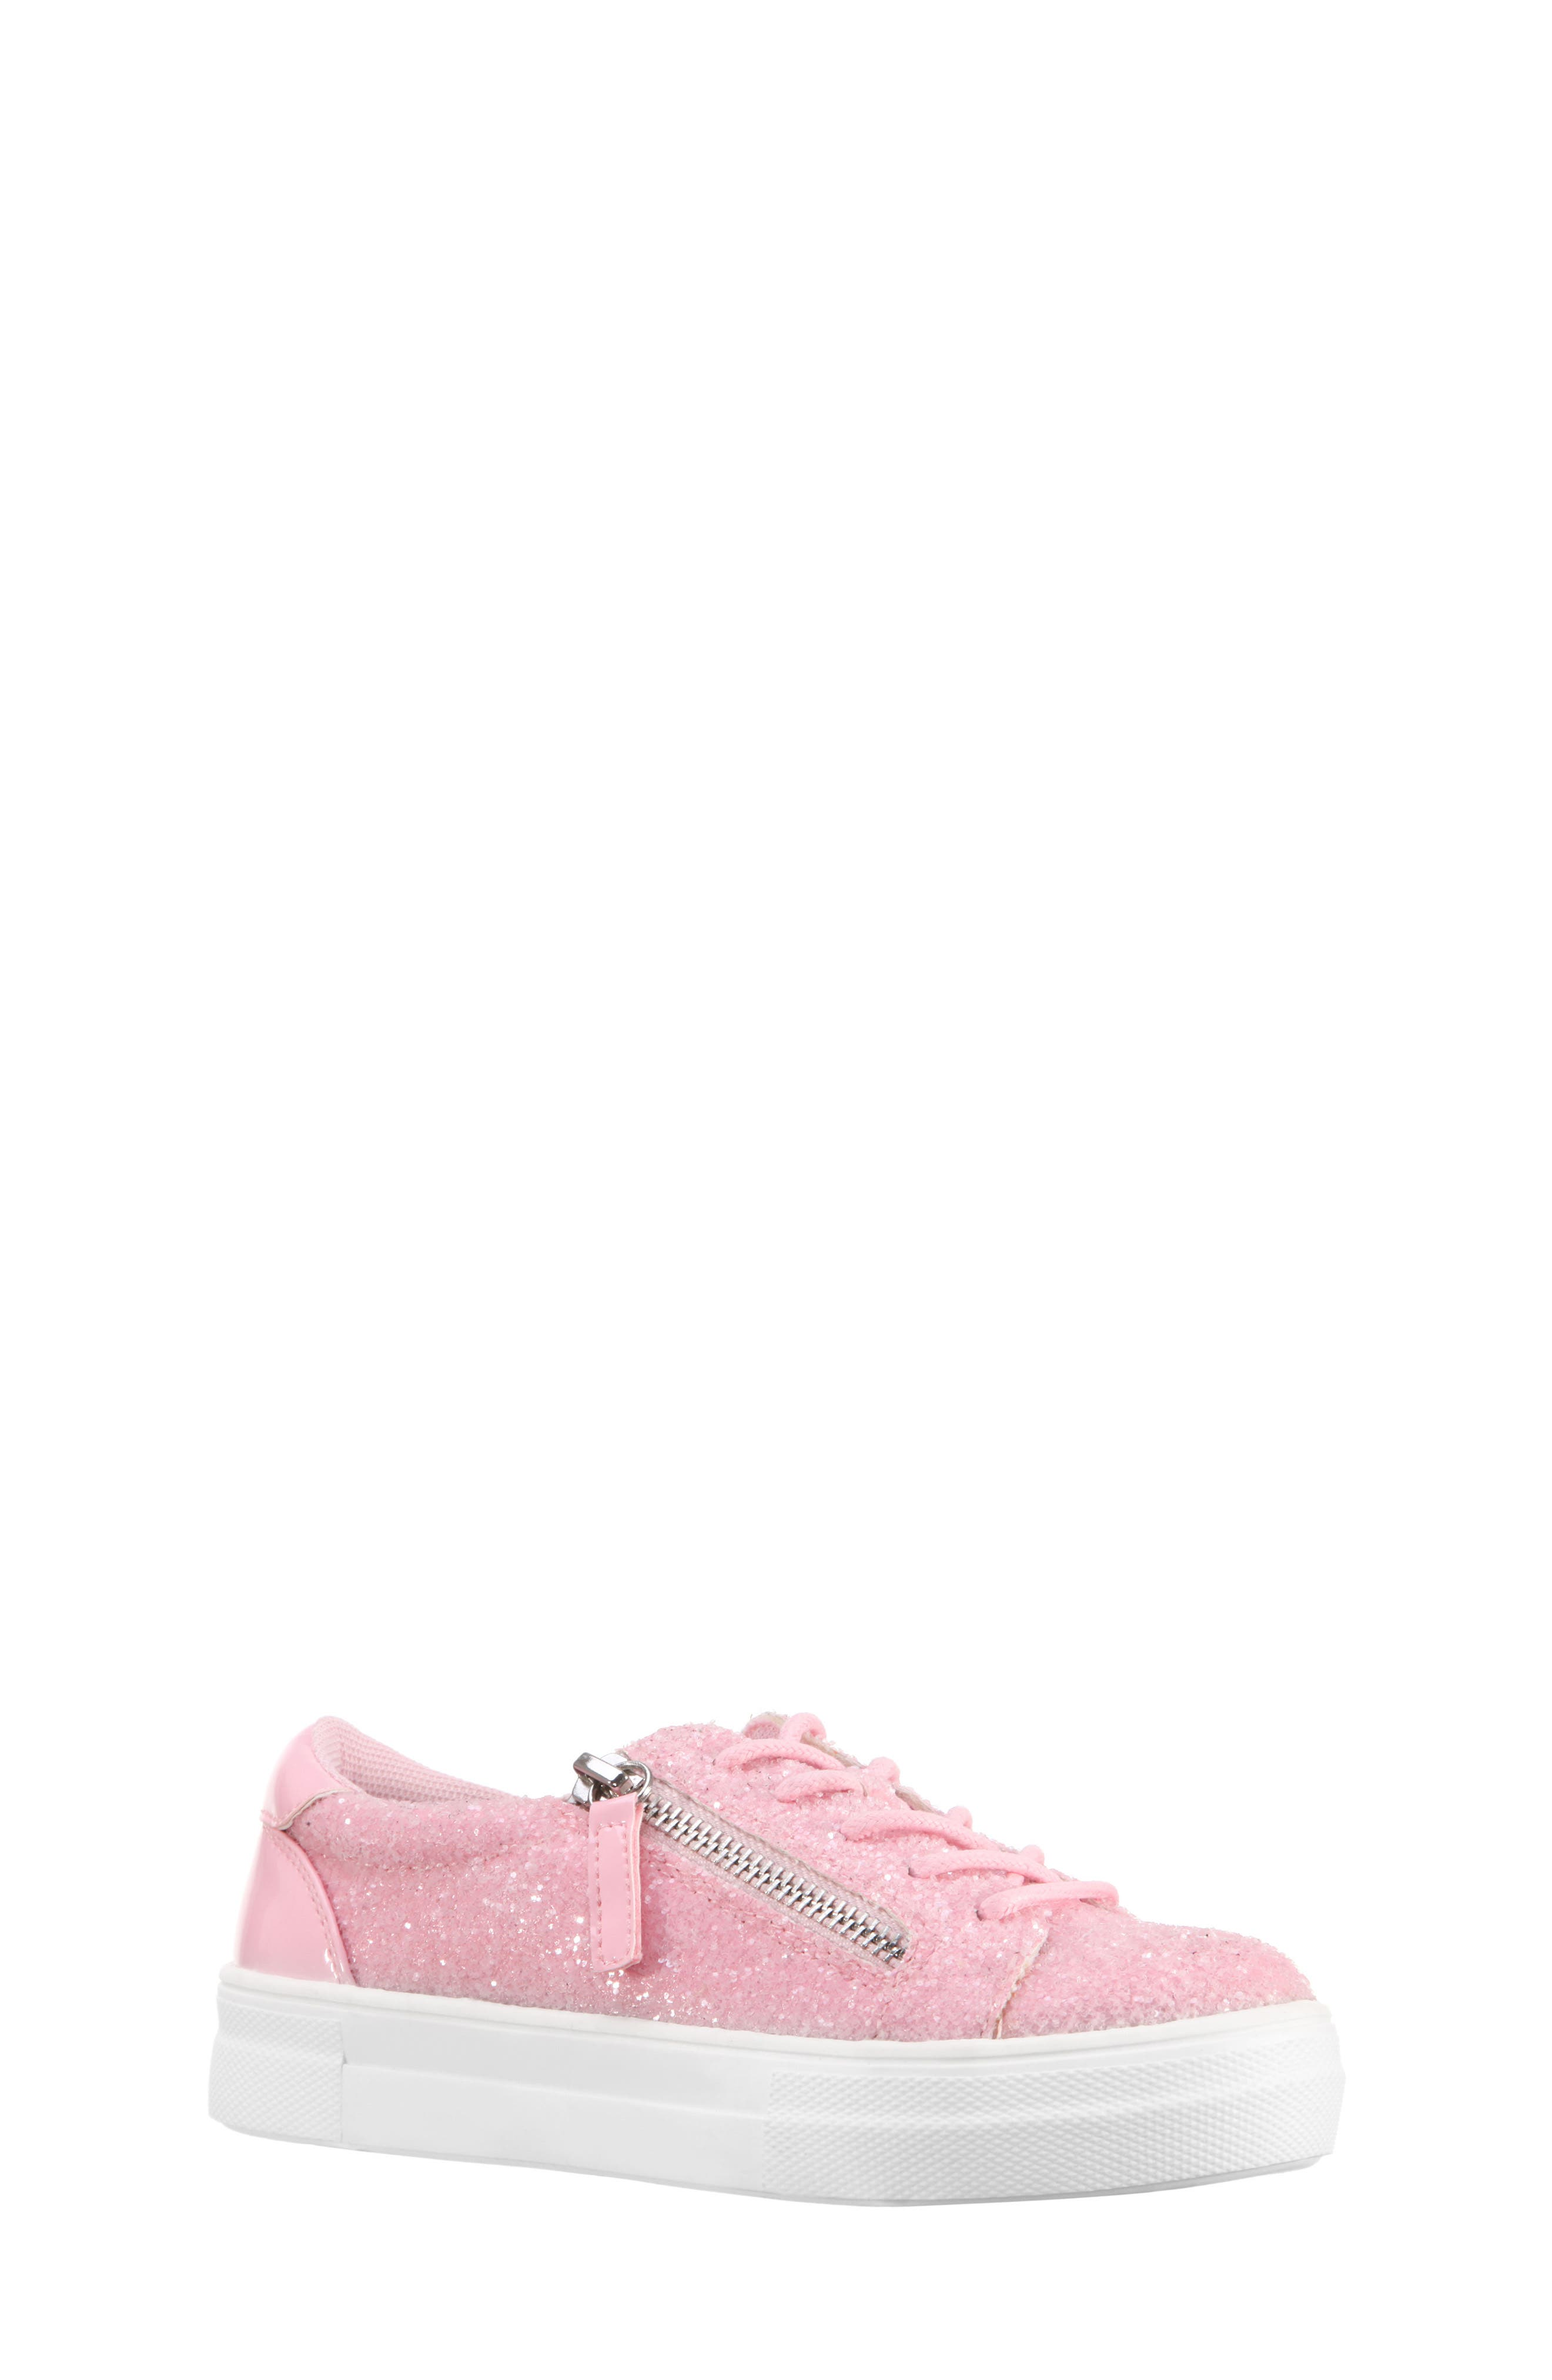 Jennalyn Glitter Sneaker,                             Main thumbnail 1, color,                             Light Pink Chunky Glitter